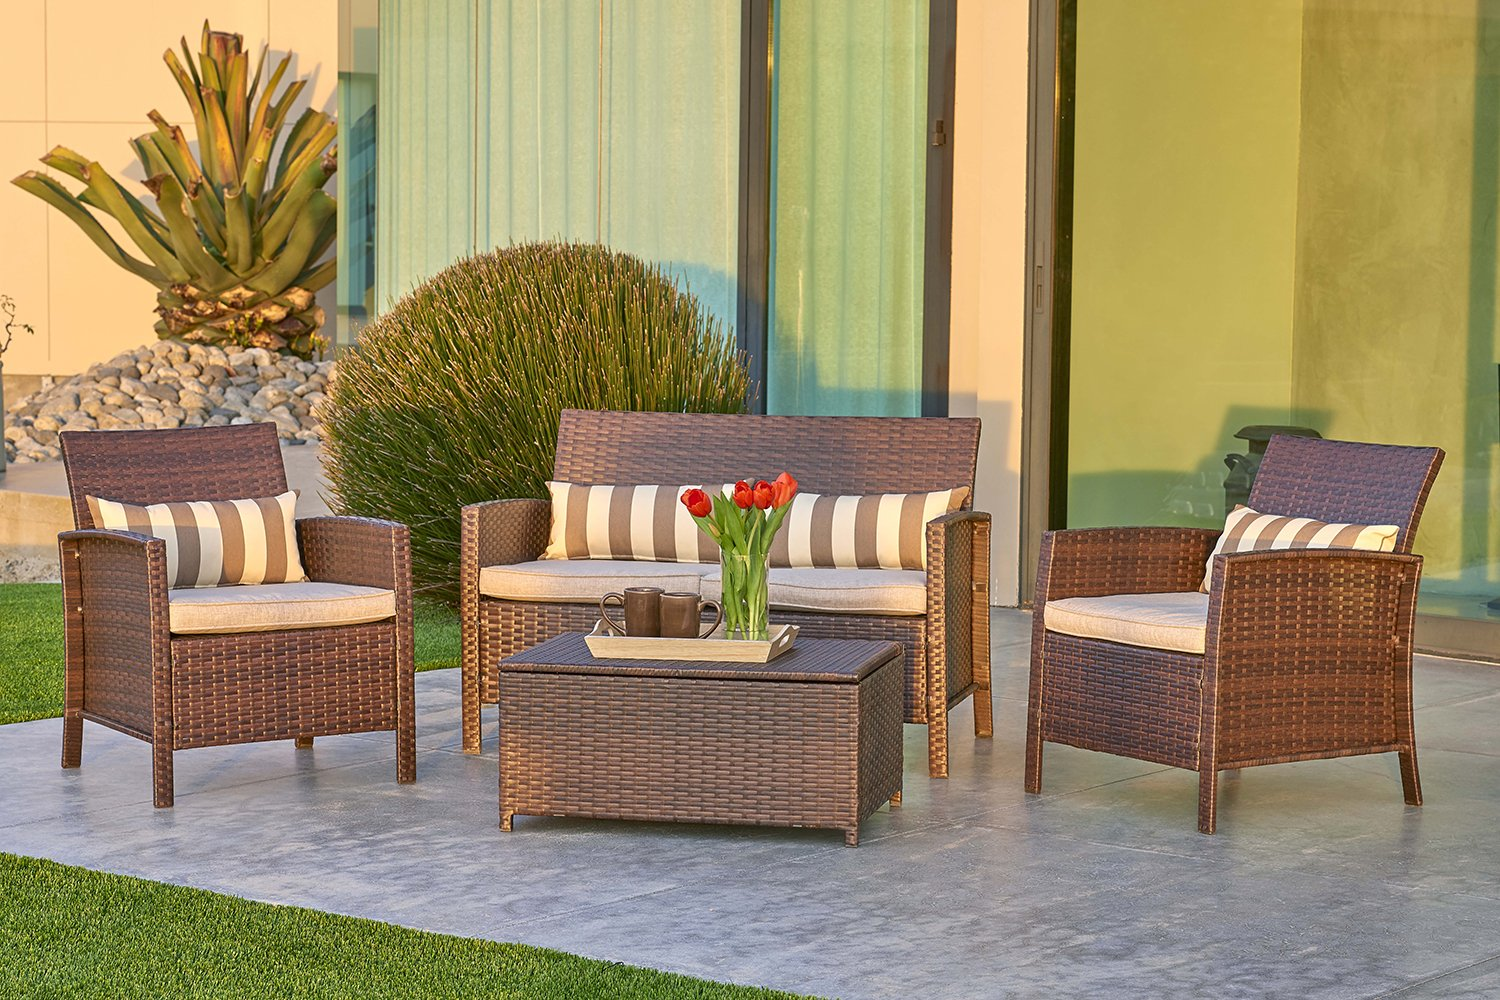 Solvista Outdoor 4-Piece Conversation Furniture Set with Coffee Table All Weather Brown Wicker with Light Brown Waterproof Cushions & Classic Gold Stripe Throw Pillow | Patio, Backyard, Pool by Solvista